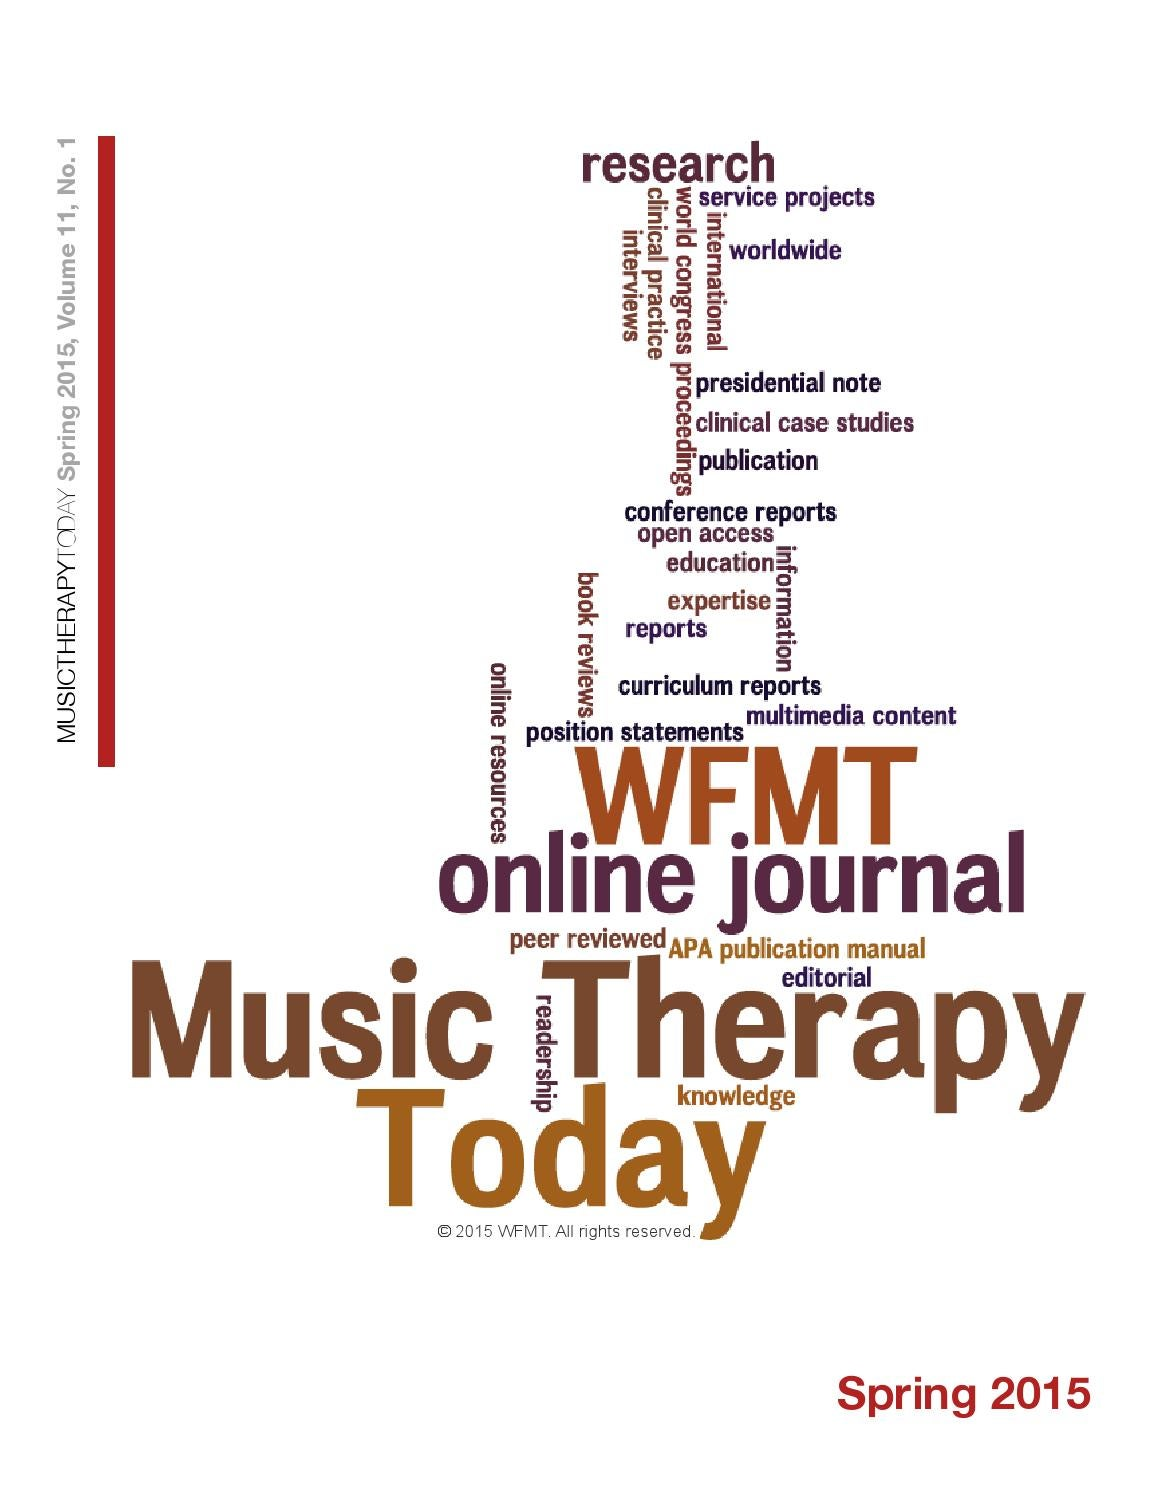 Do I need a bachelor's or a master's to work as a music therapist?